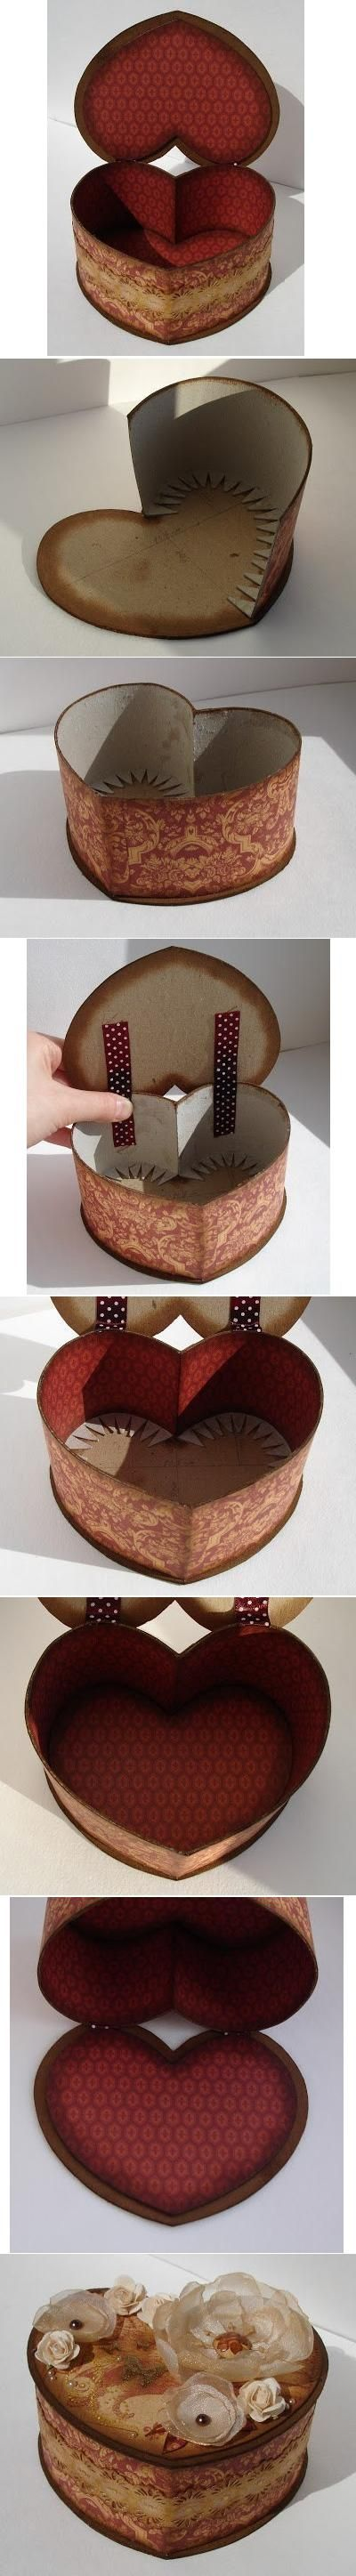 "<input type=""hidden"" value="""" data-frizzlyPostContainer="""" data-frizzlyPostUrl=""http://www.usefuldiy.com/diy-cardboard-heart-shaped-box/diy-cardboard-heart-shaped-box/"" data-frizzlyPostTitle=""DIY Cardboard Heart Shaped Box"" data-frizzlyHoverContainer=""""><p>>>> Craft Tutorials More Free Instructions Free Tutorials More Craft Tutorials</p>"